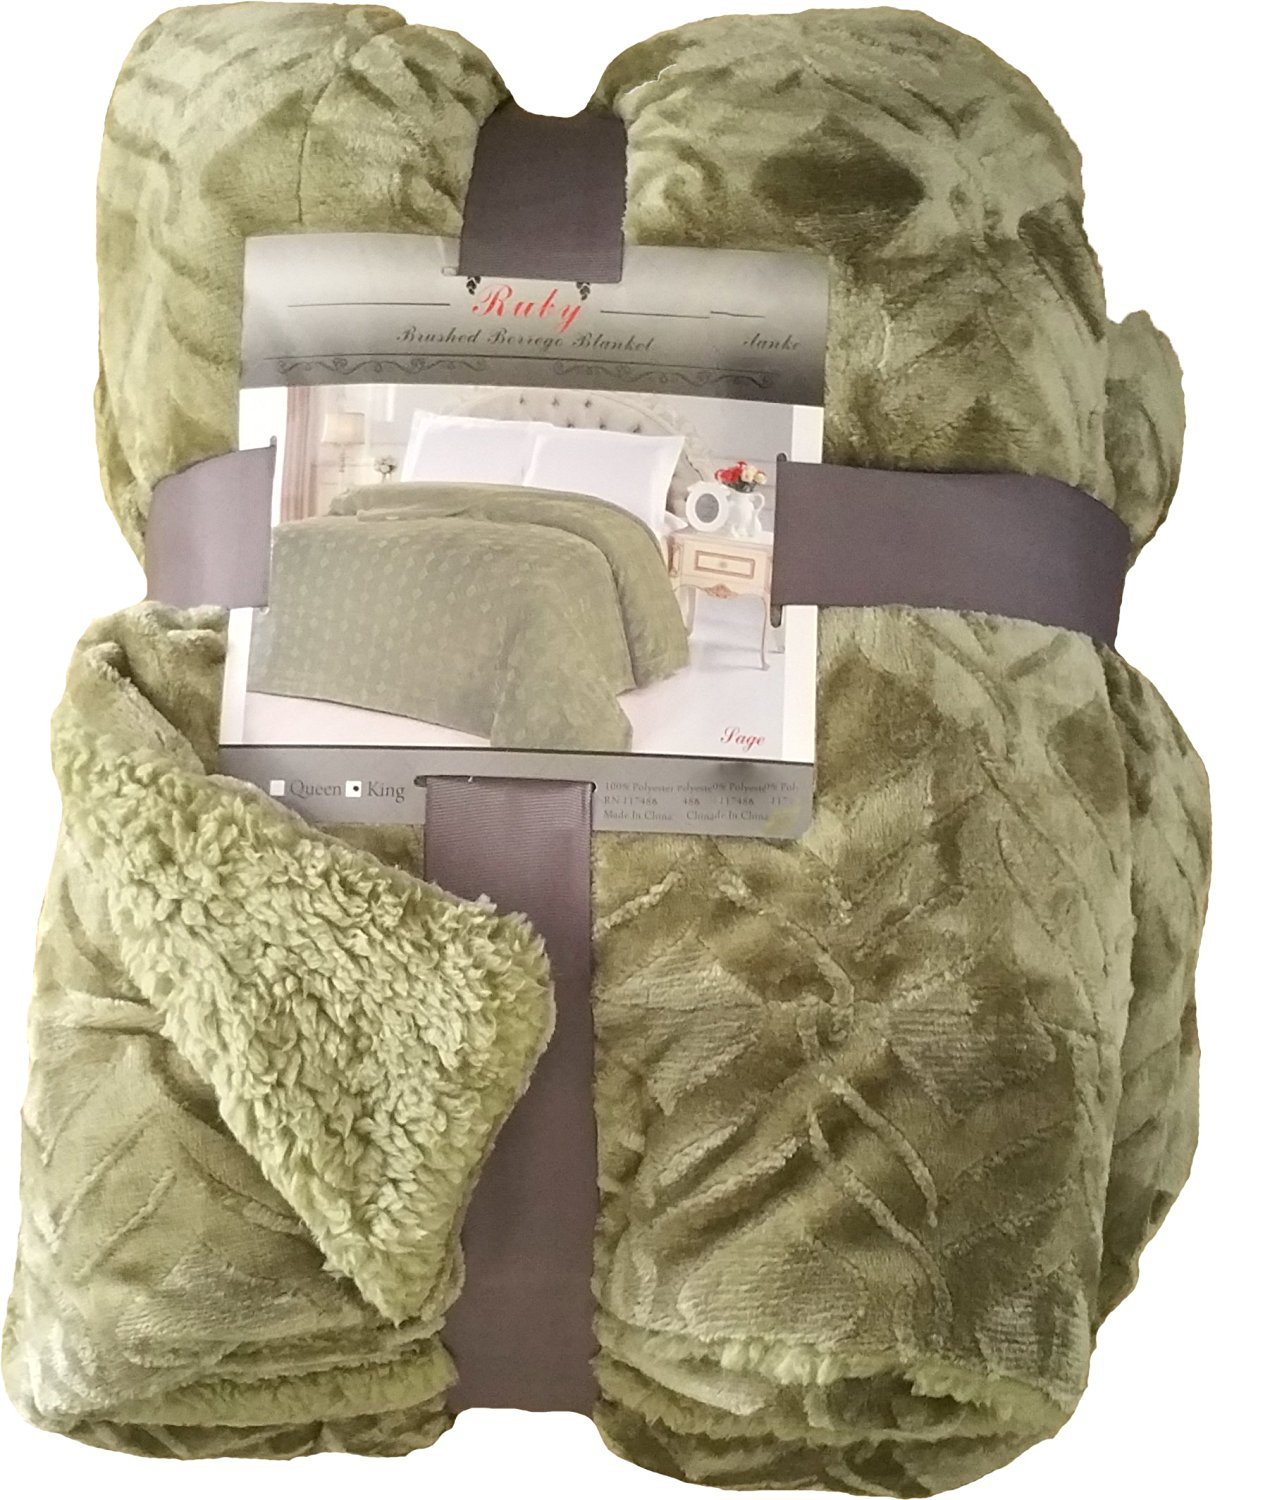 Fancy Collection Queen/king Size Embossed Blanket Sumptuously Soft Plush Sollid Sage Green with Sherpa Revirsable Winter Blankets Bedspread Super Soft New (Queen/king)